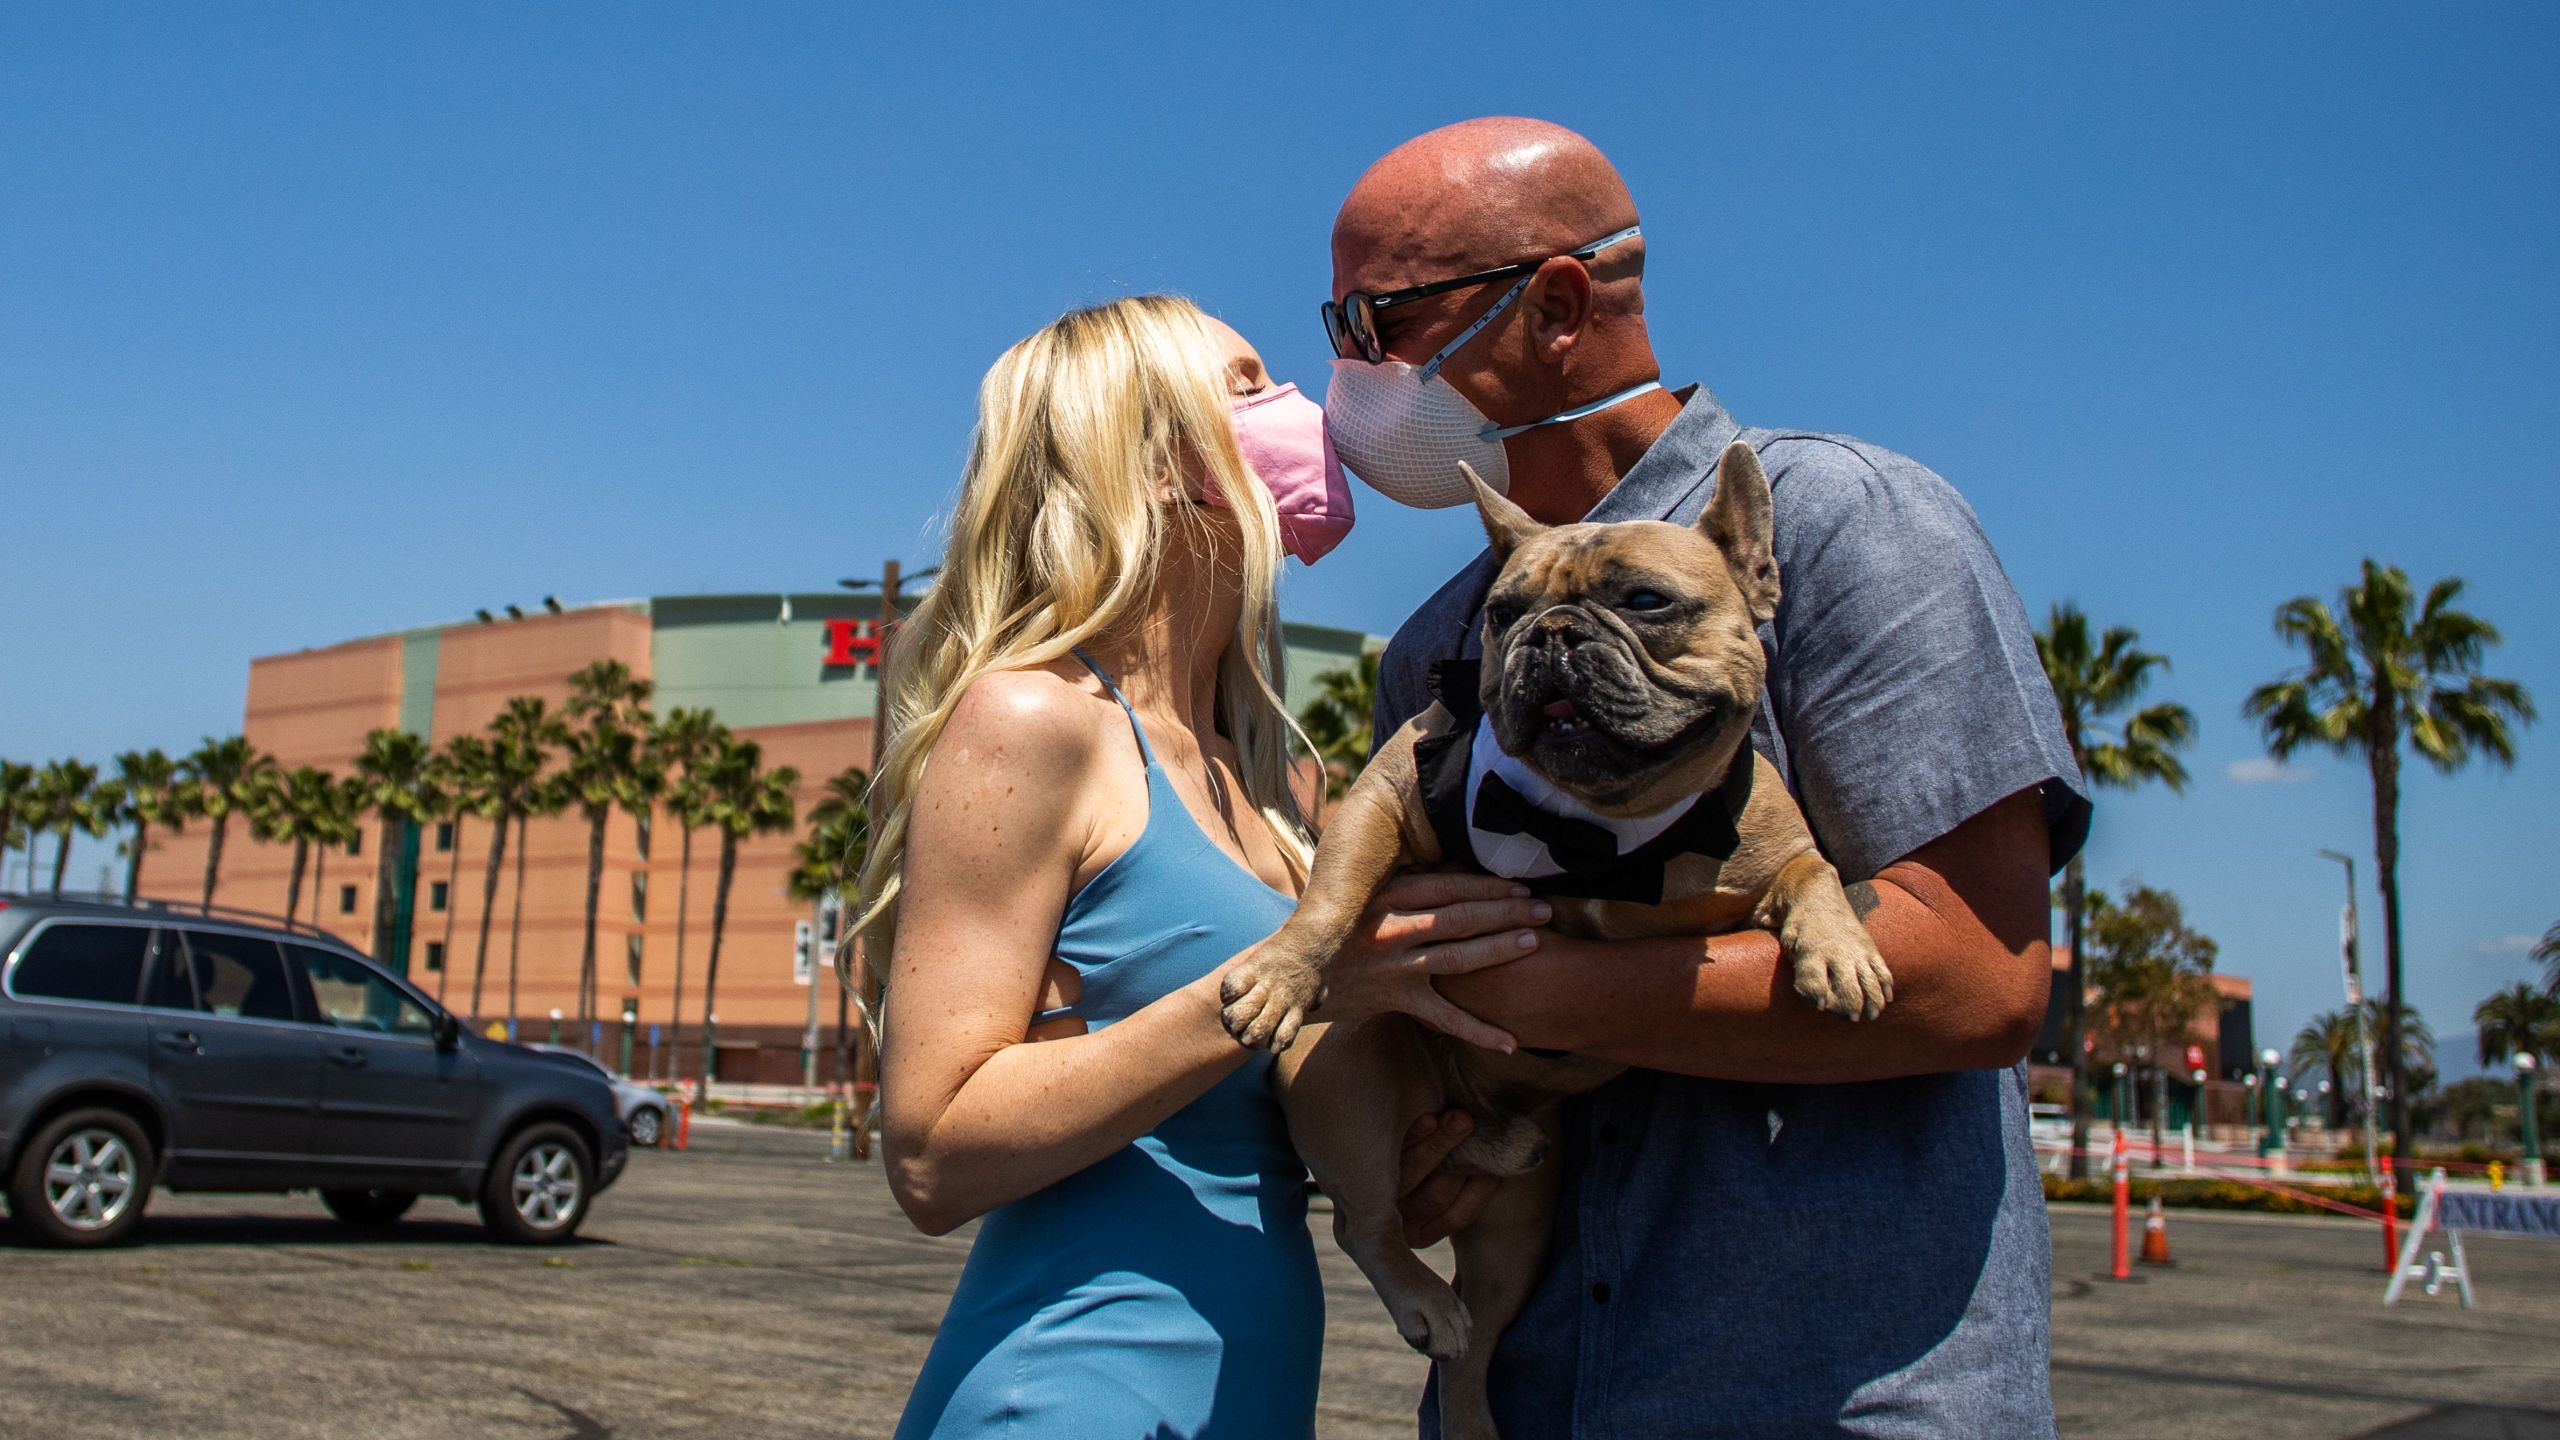 A couple kisses wearing face masks and holding their dog after their wedding ceremony officiated by a clerk recorder at the Honda Center parking lot on April 21, 2020, in Anaheim, California. (APU GOMES/AFP via Getty Images)